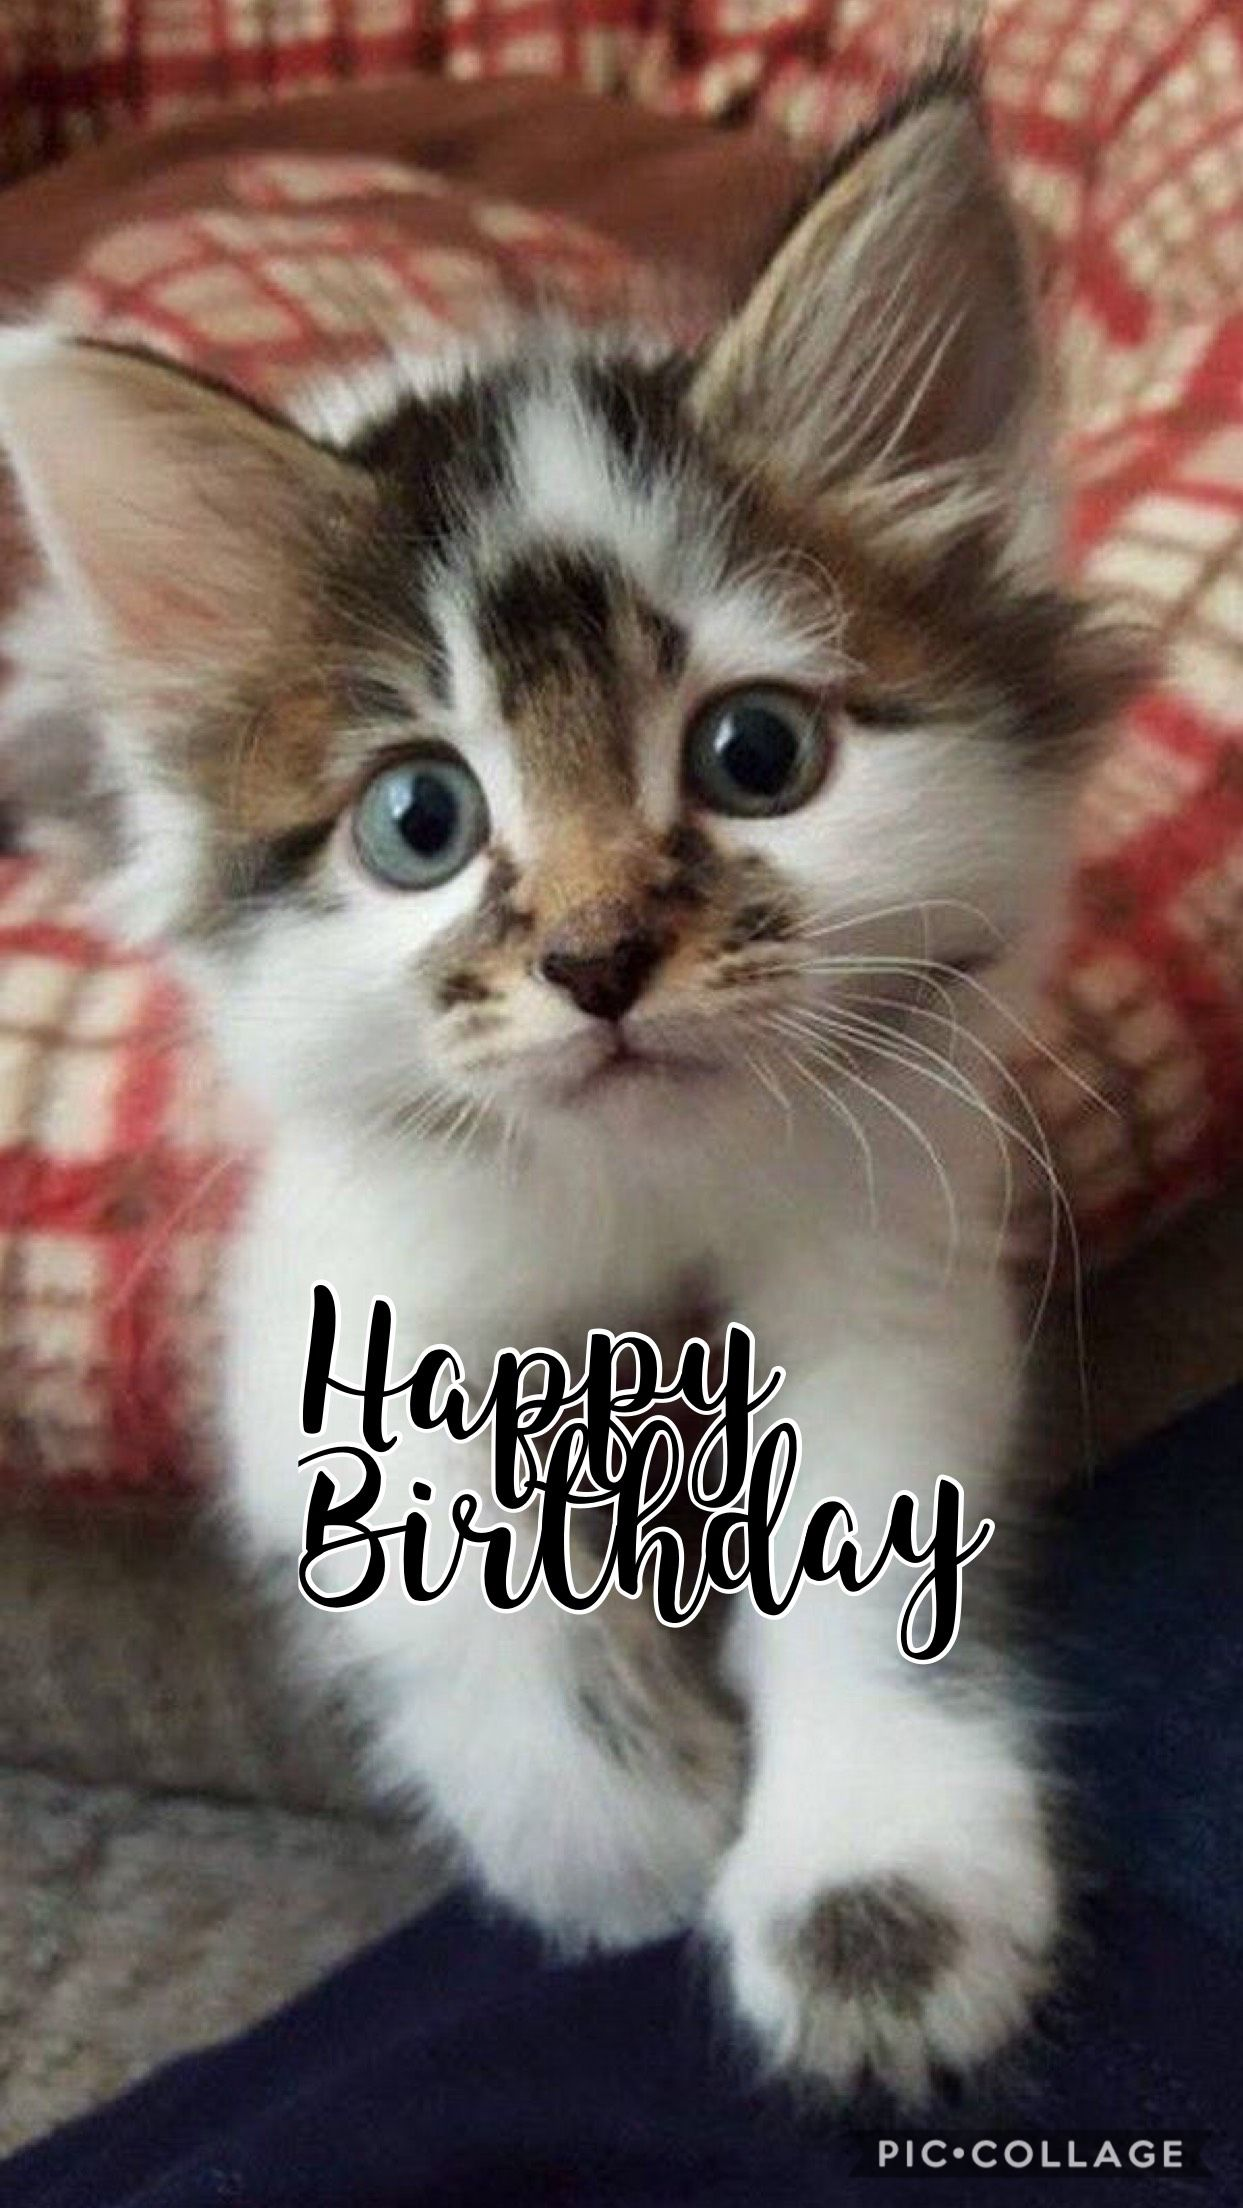 7068615f4d042b416d27294293d2d552 pin by renee wood on happy birthday pinterest happy birthday